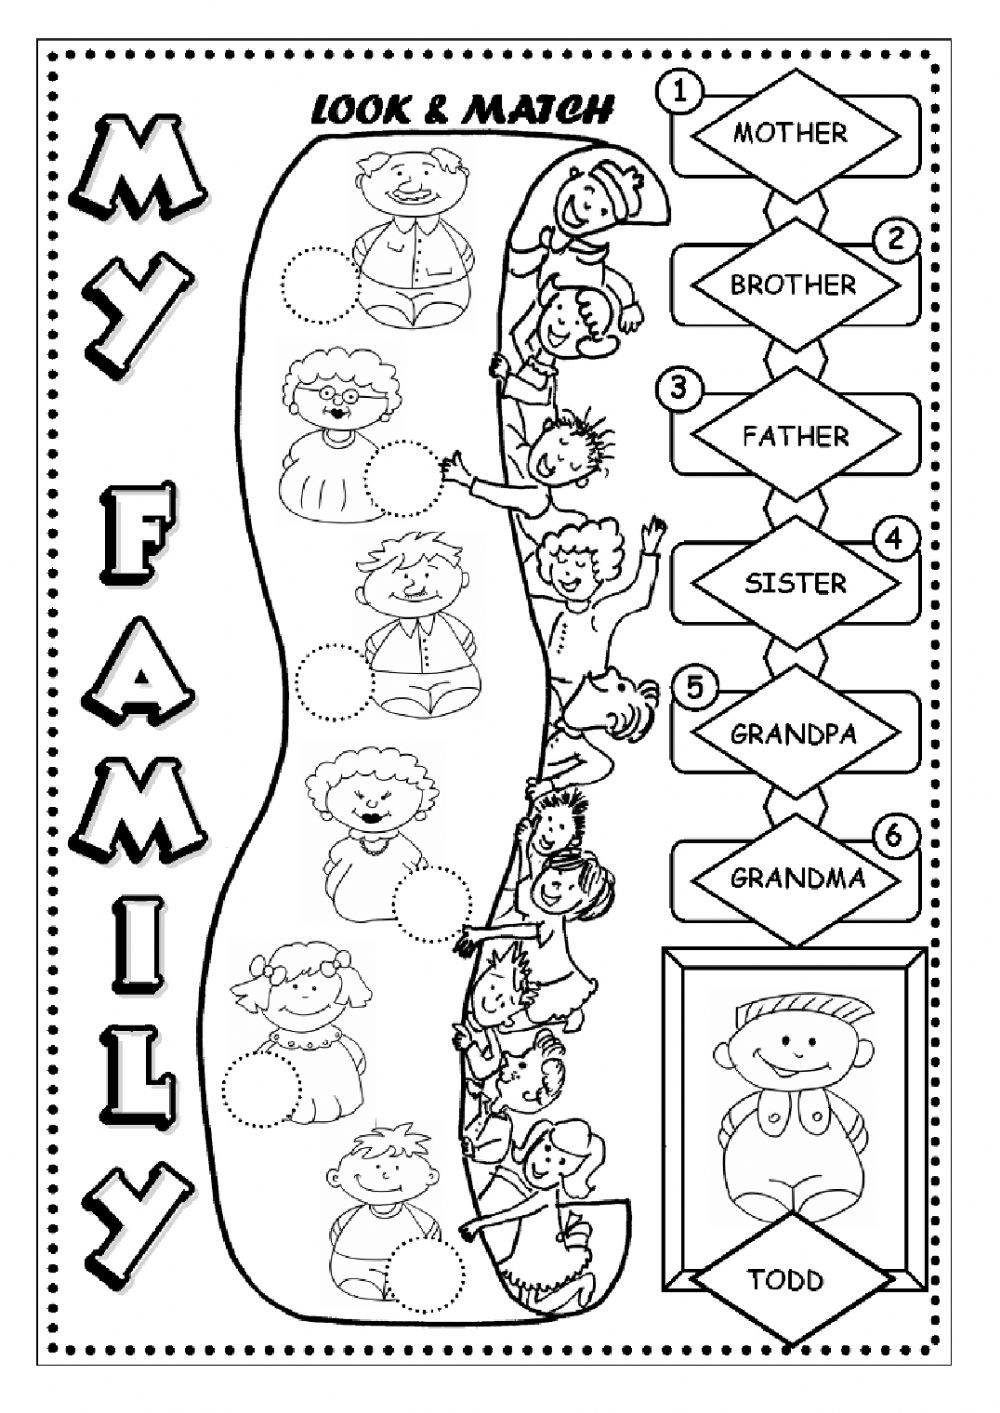 My_Family_rz82at on Flower Coloring Worksheets Kindergarten